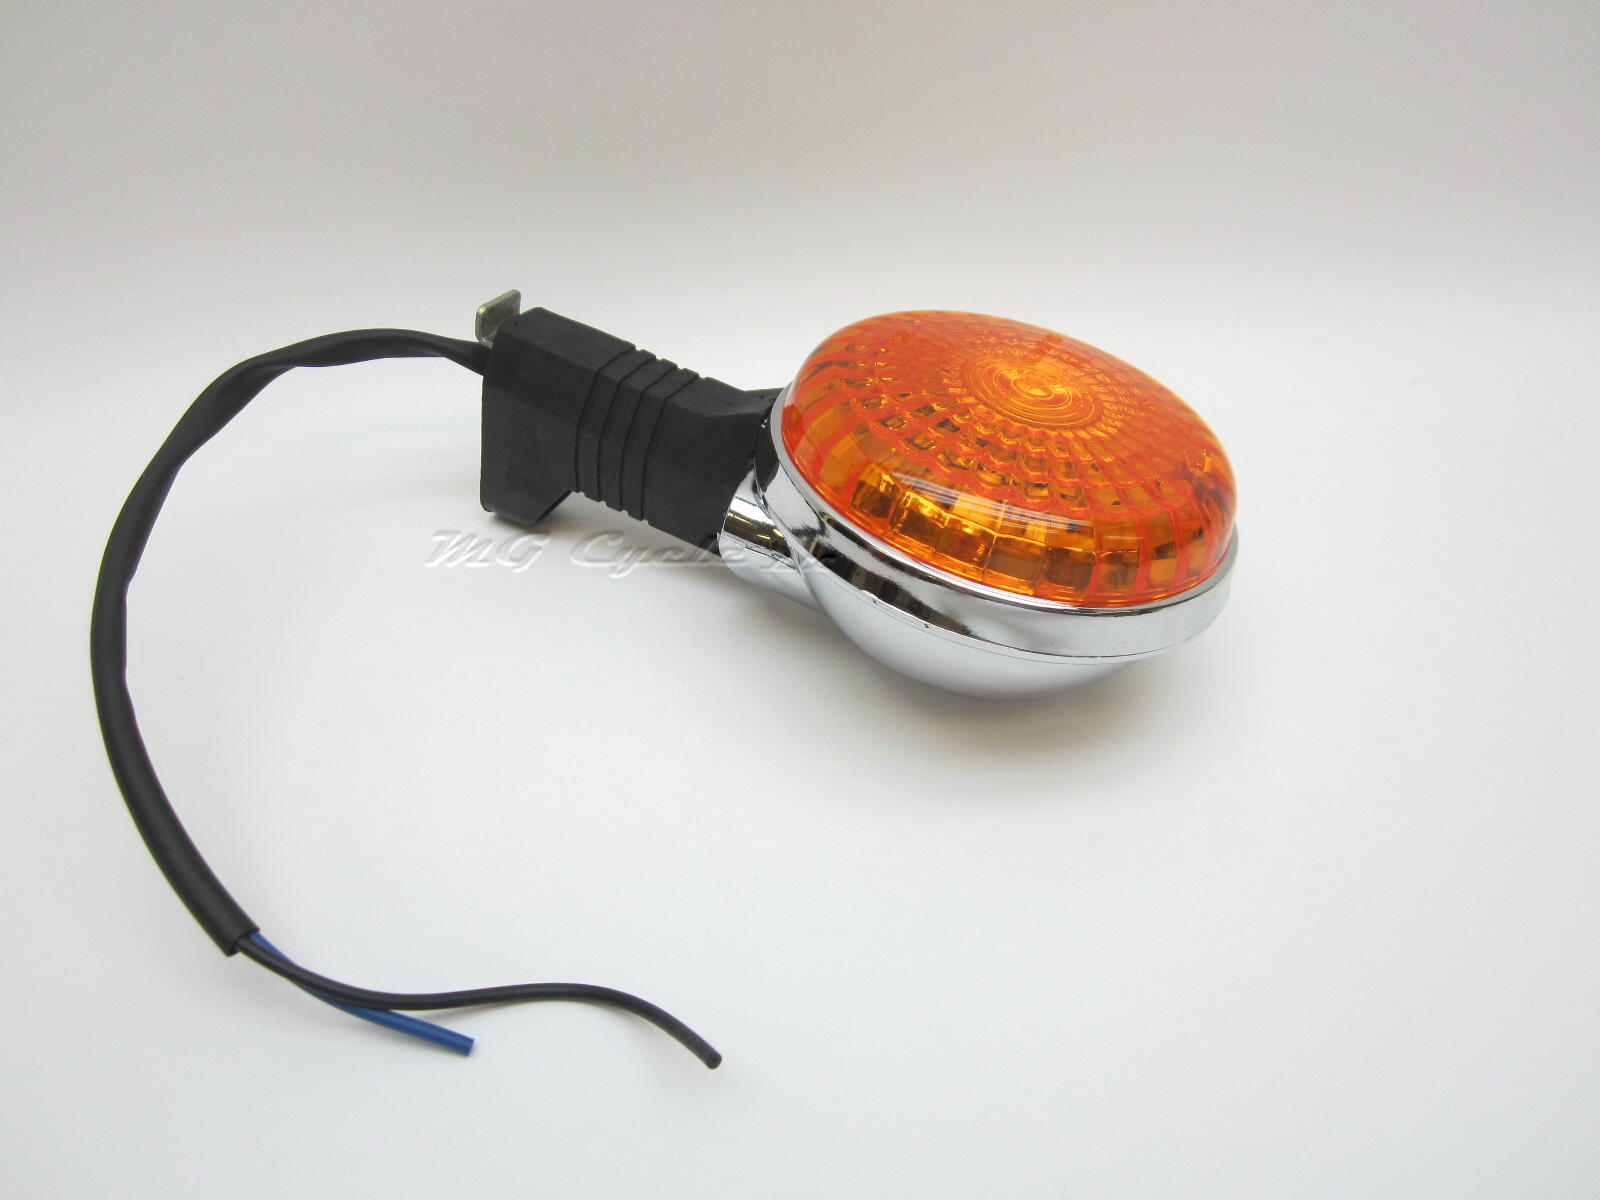 turn signal assembly, front right, California III, Mille GT